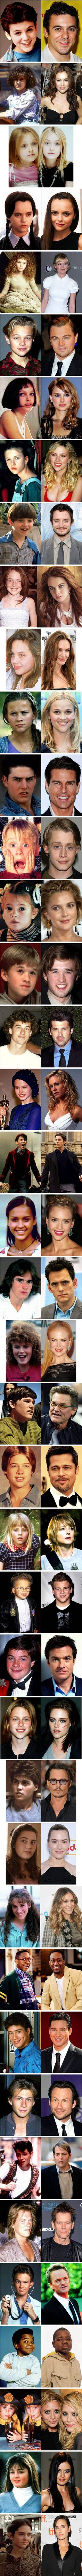 Celebrities, then and now. (most of them are beautiful, anyway)